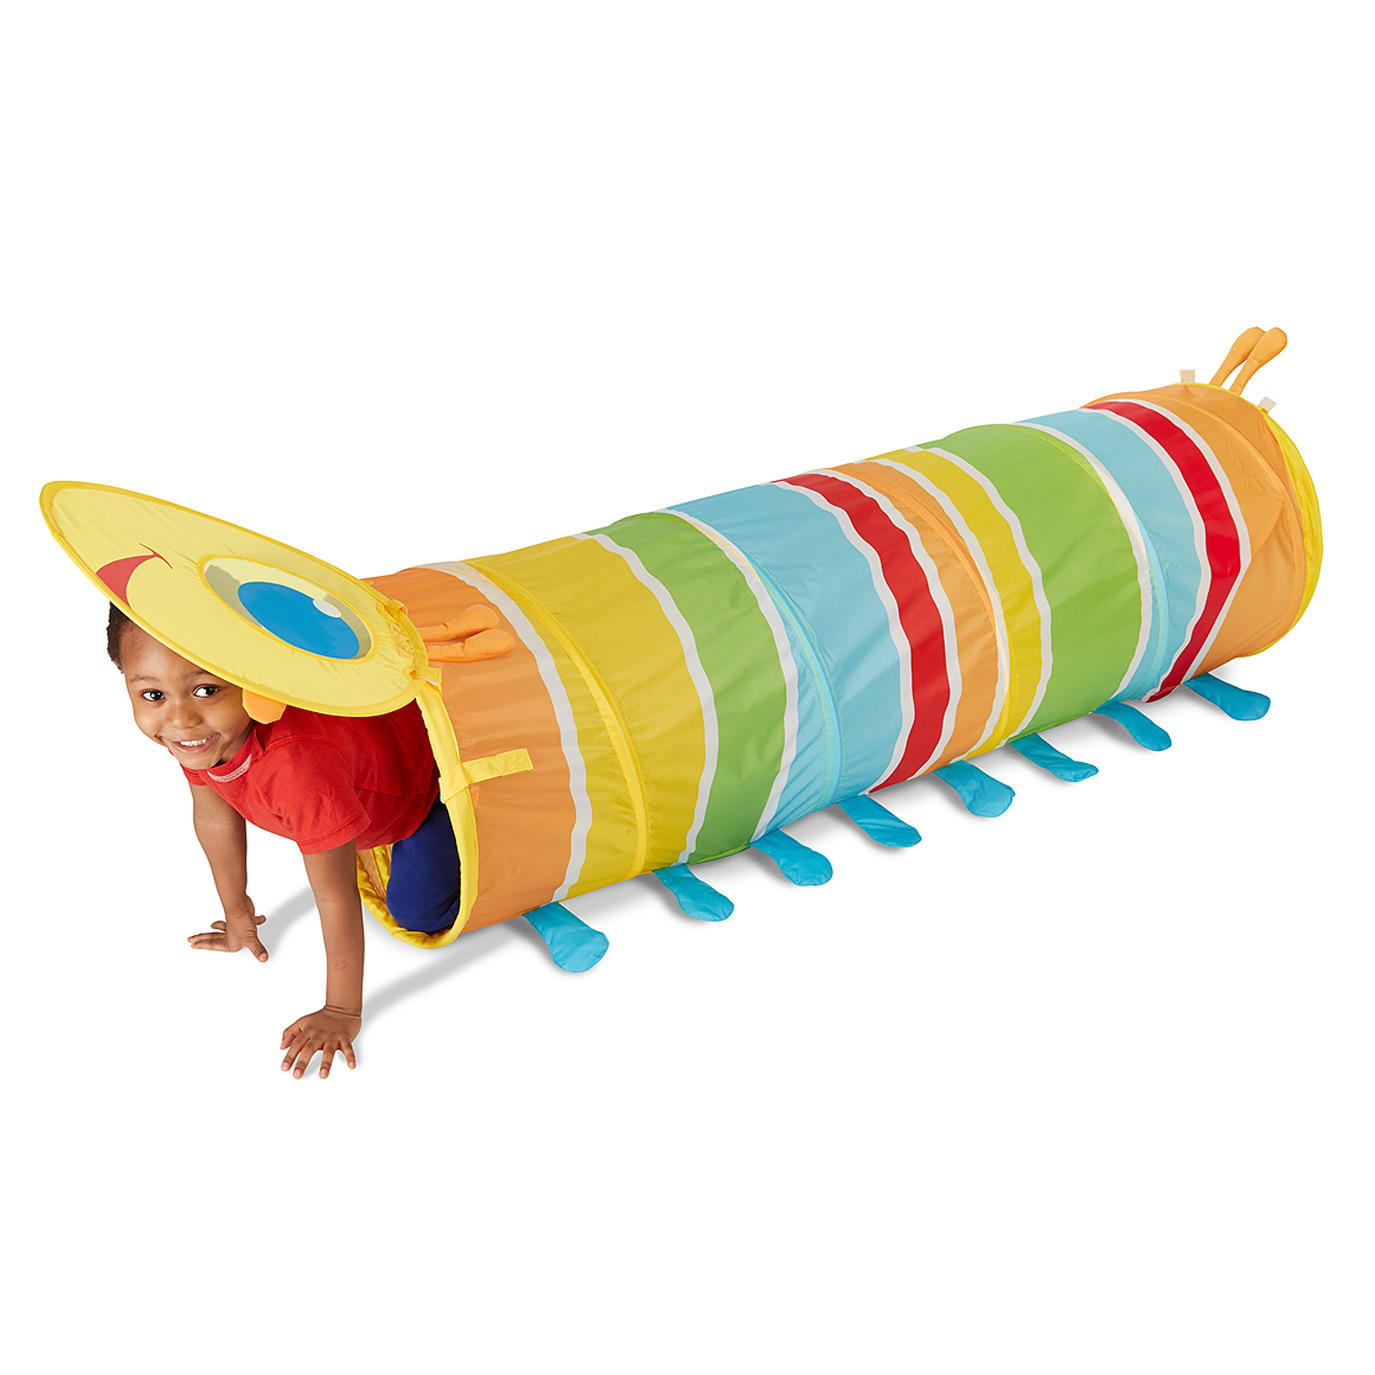 GIDDY BUGGY TUNNEL (Melissa & Doug, R520)  Giddy Buggy is happy to invite active kids to crawl through a rainbow of colour in this bright tunnel. Giddy's smiling face covers one end, making it extra fun to hide and seek in this nearly five-foot-long tube. Made of durable wipe-clean materials, it sets up quickly and easily folds flat for convenient storage. Sturdy steel frame is padded for comfort and hours of activity. Crawling through this tunnel promotes gross motor skills, arm strength and co-ordination in a fun and exciting activity.  Suitable for ages 3 years and older.